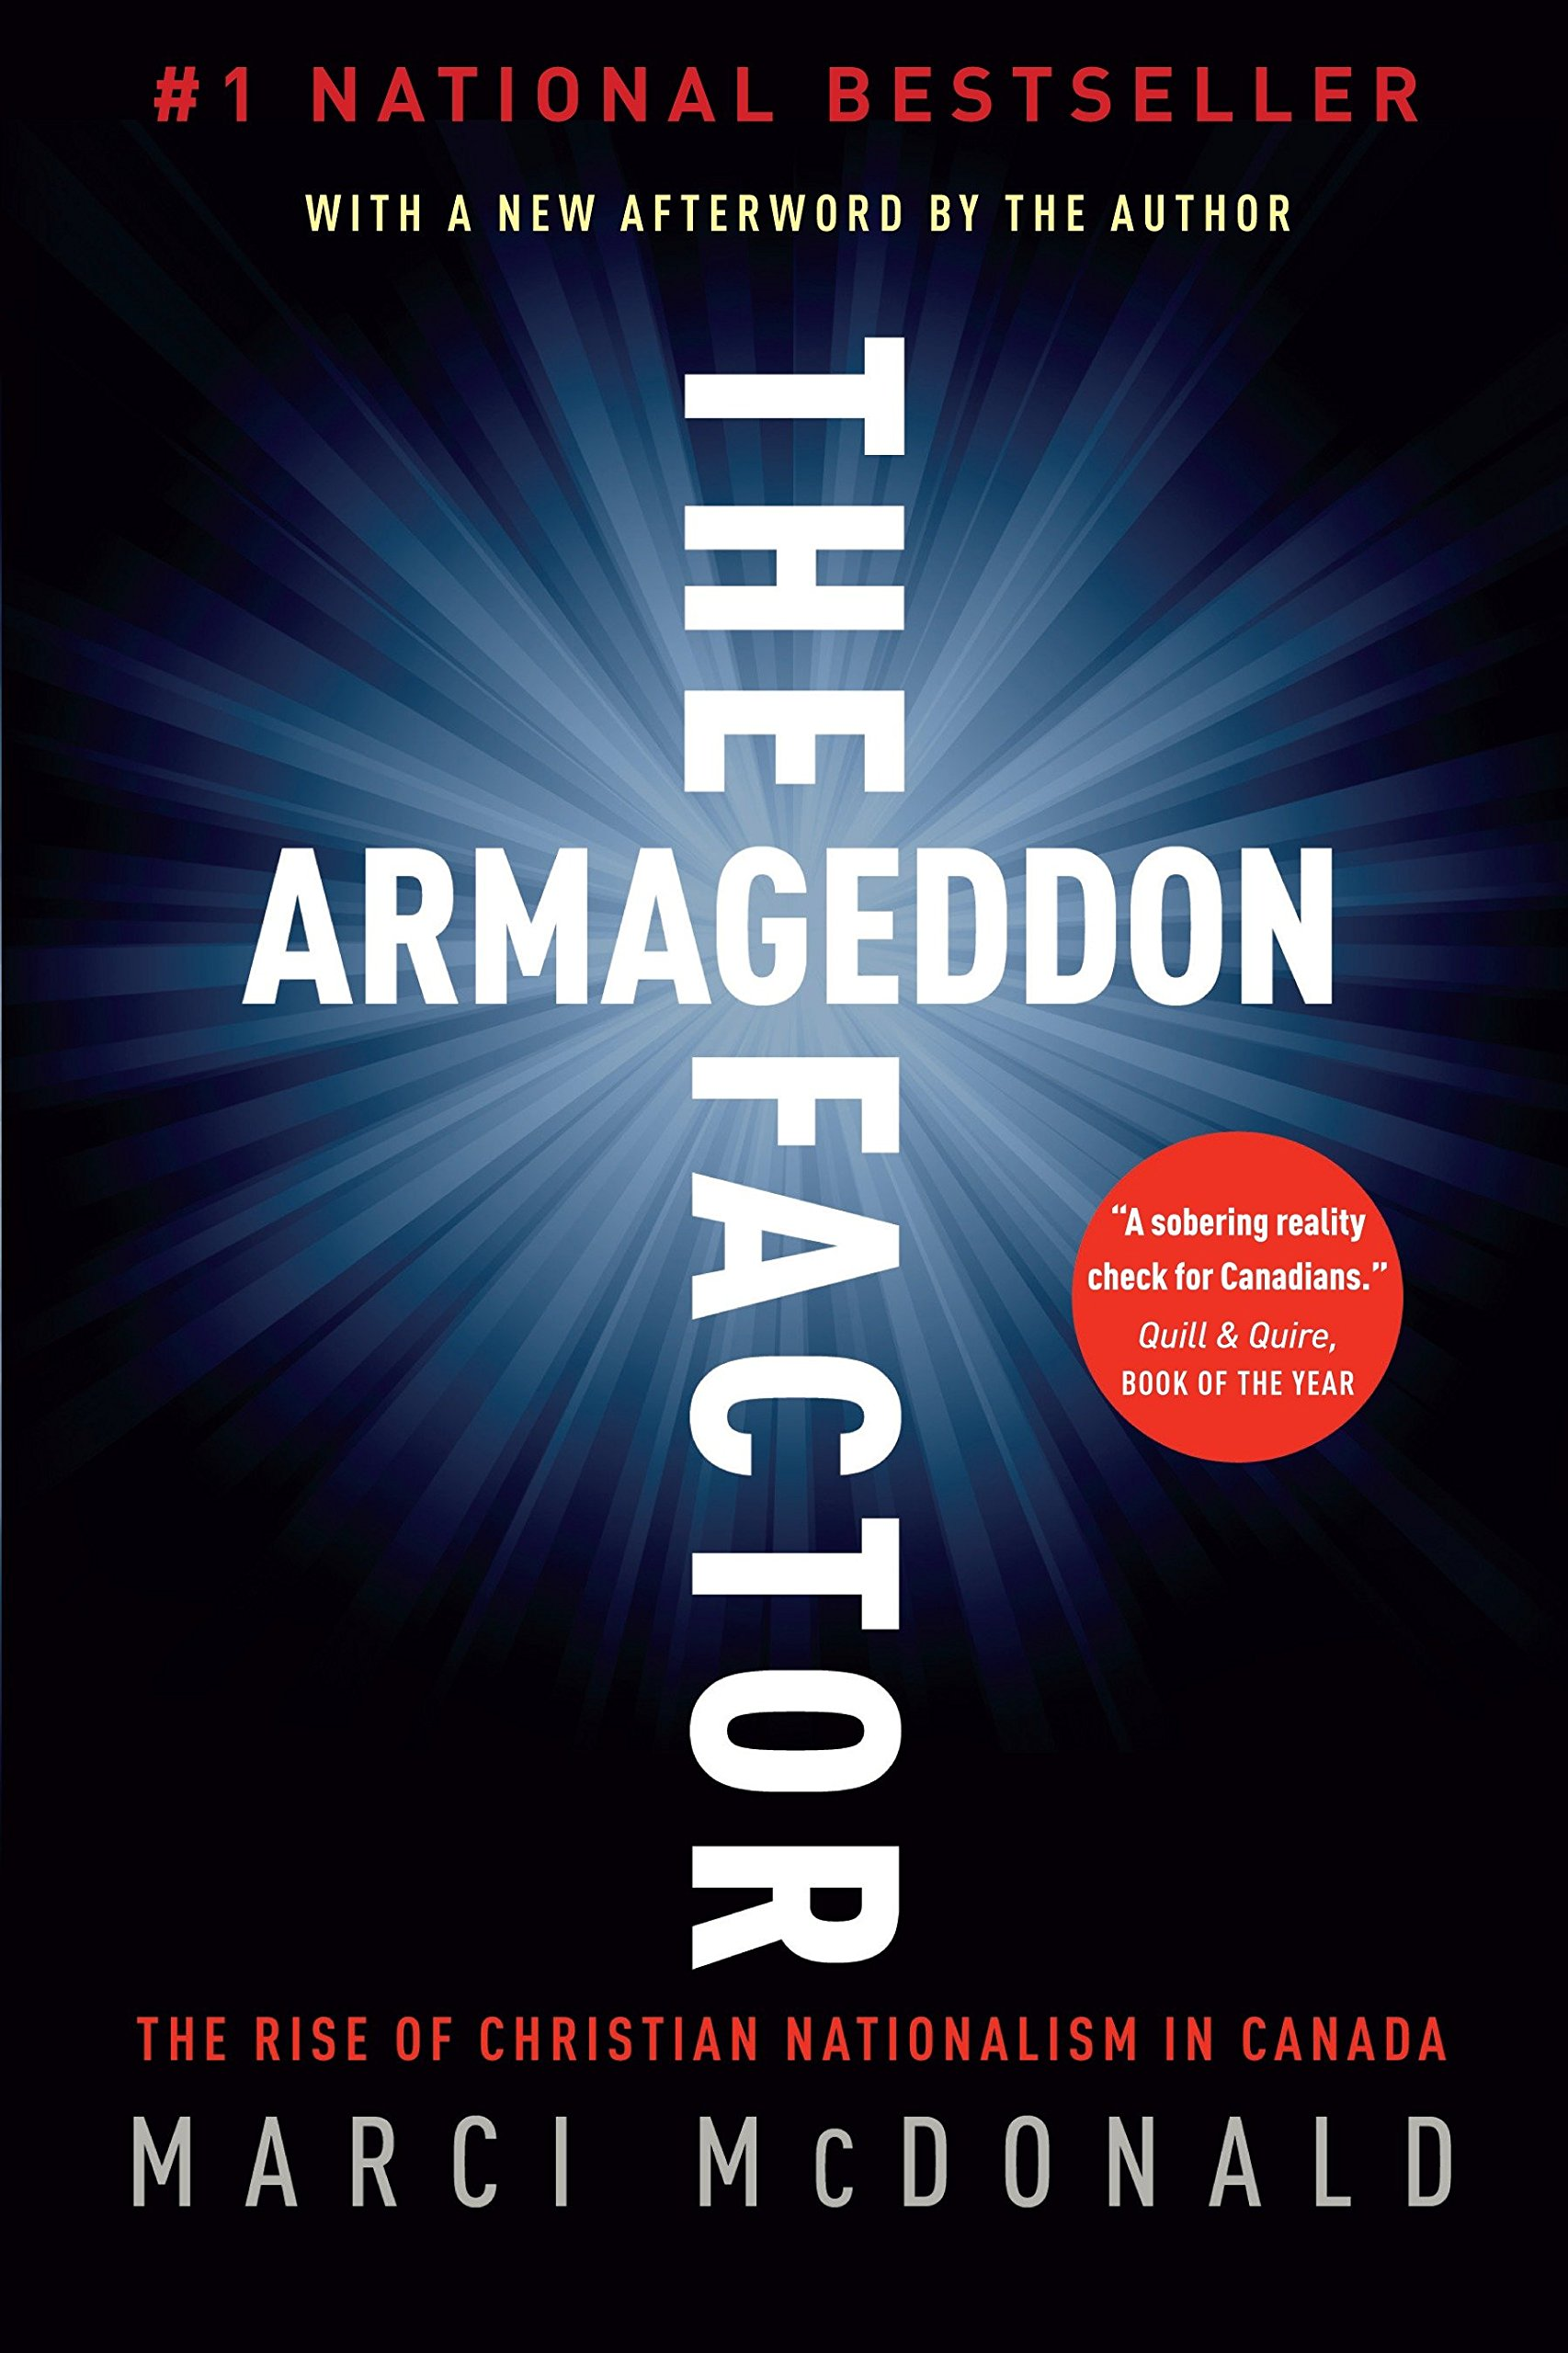 The Armageddon Factor: The Rise of Christian Nationalism in Canada  Paperback – Apr 13 2011